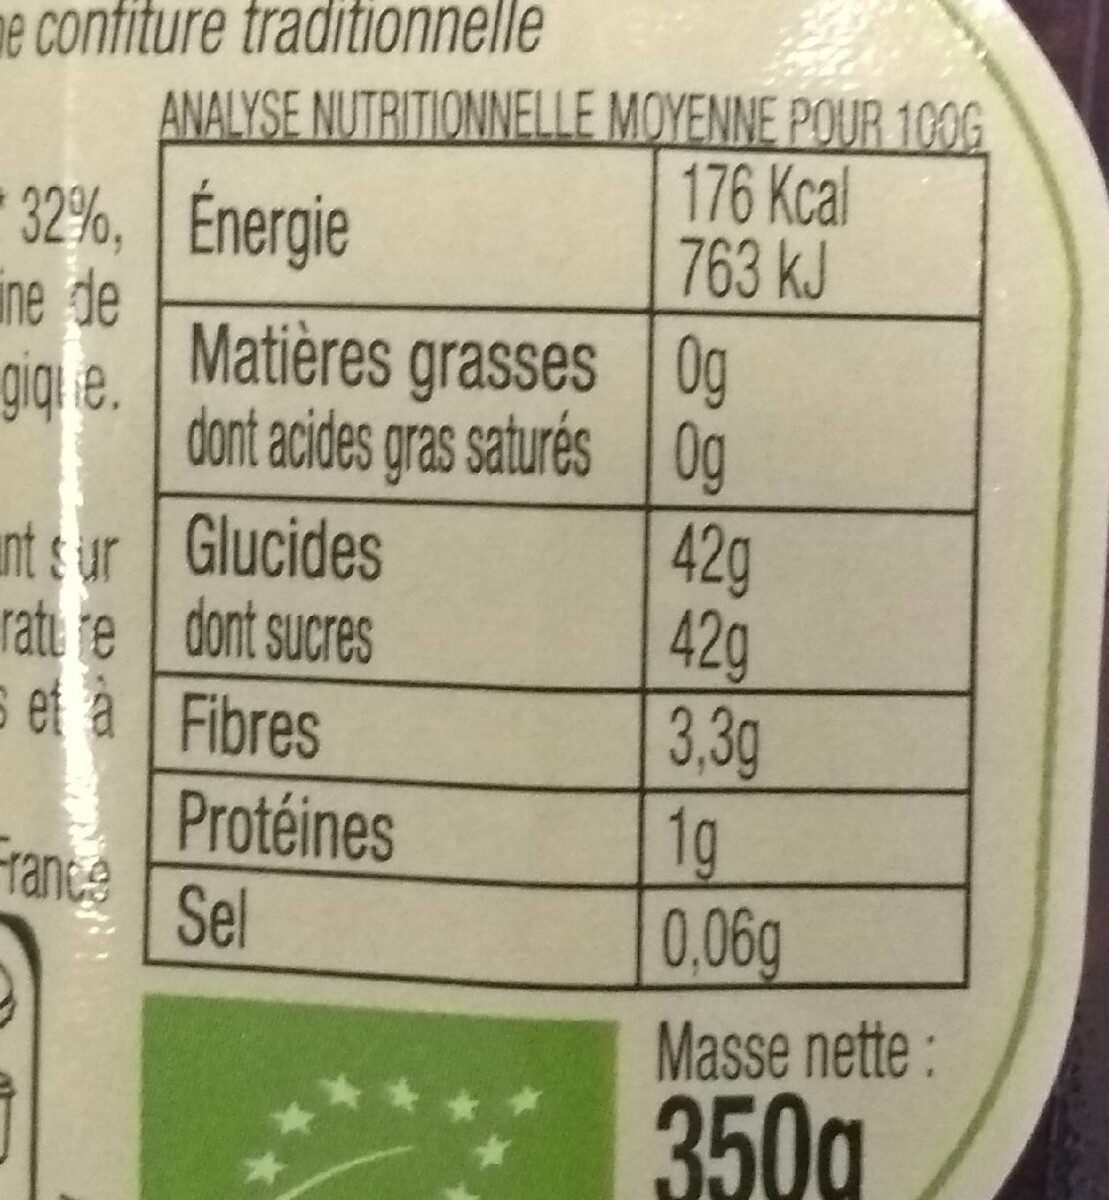 Confiture aux Superfruits Framboise, Griotte & Aronia - Nutrition facts